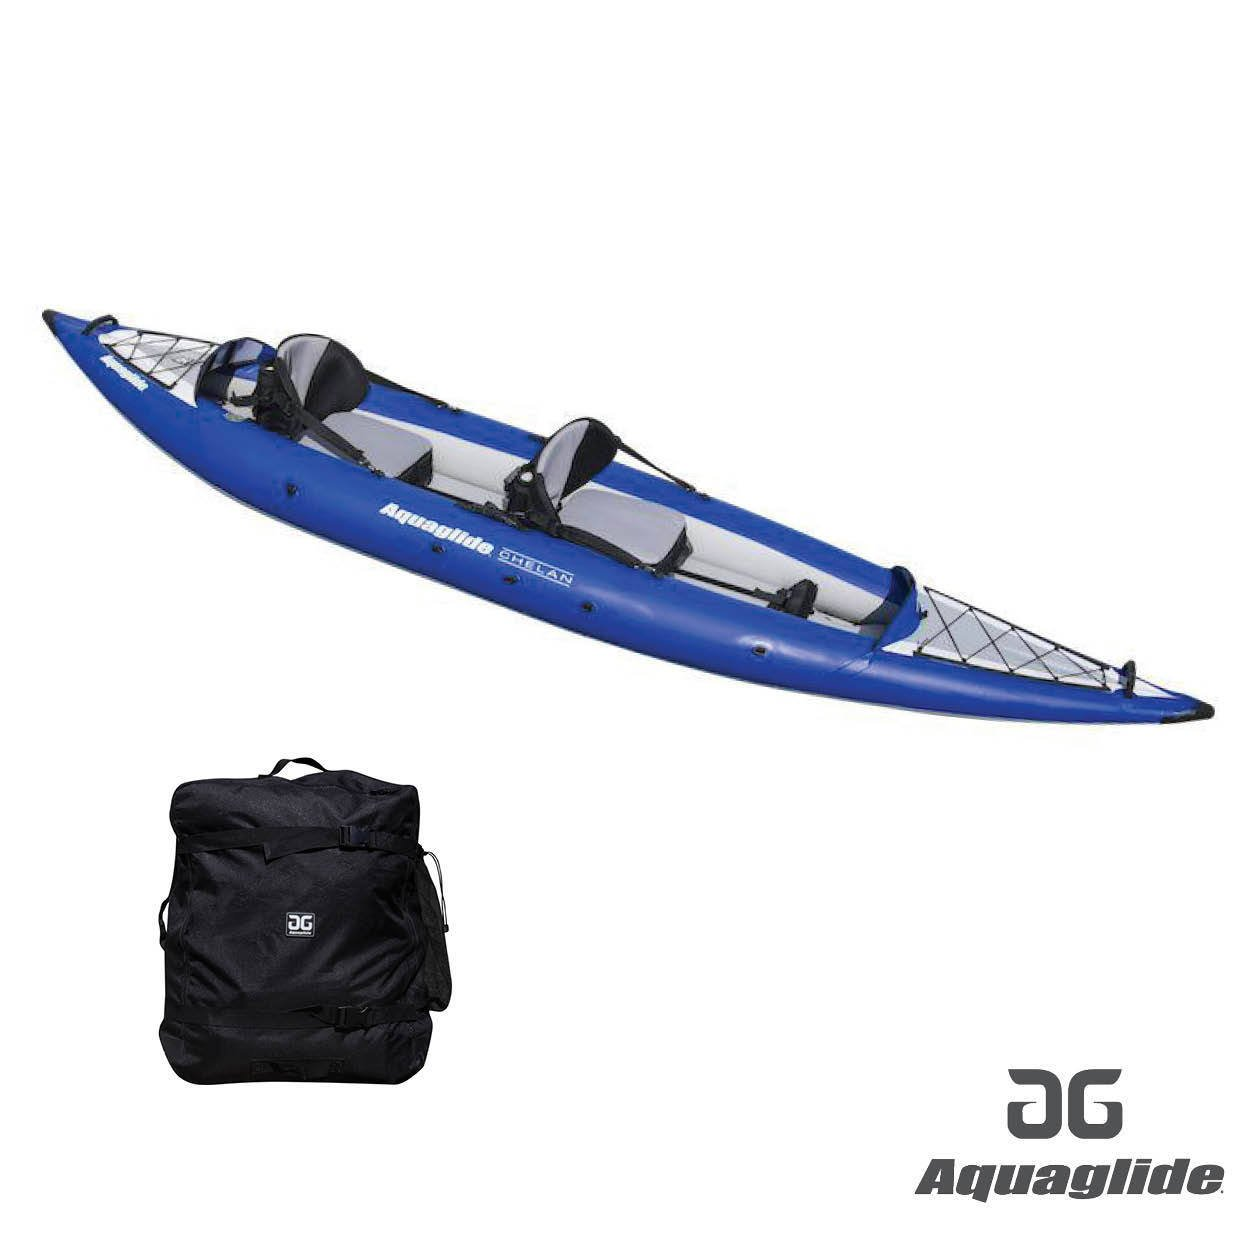 Aquaglide Manguera Boot - Kayak Inflable Chelan One HB Canoa ...